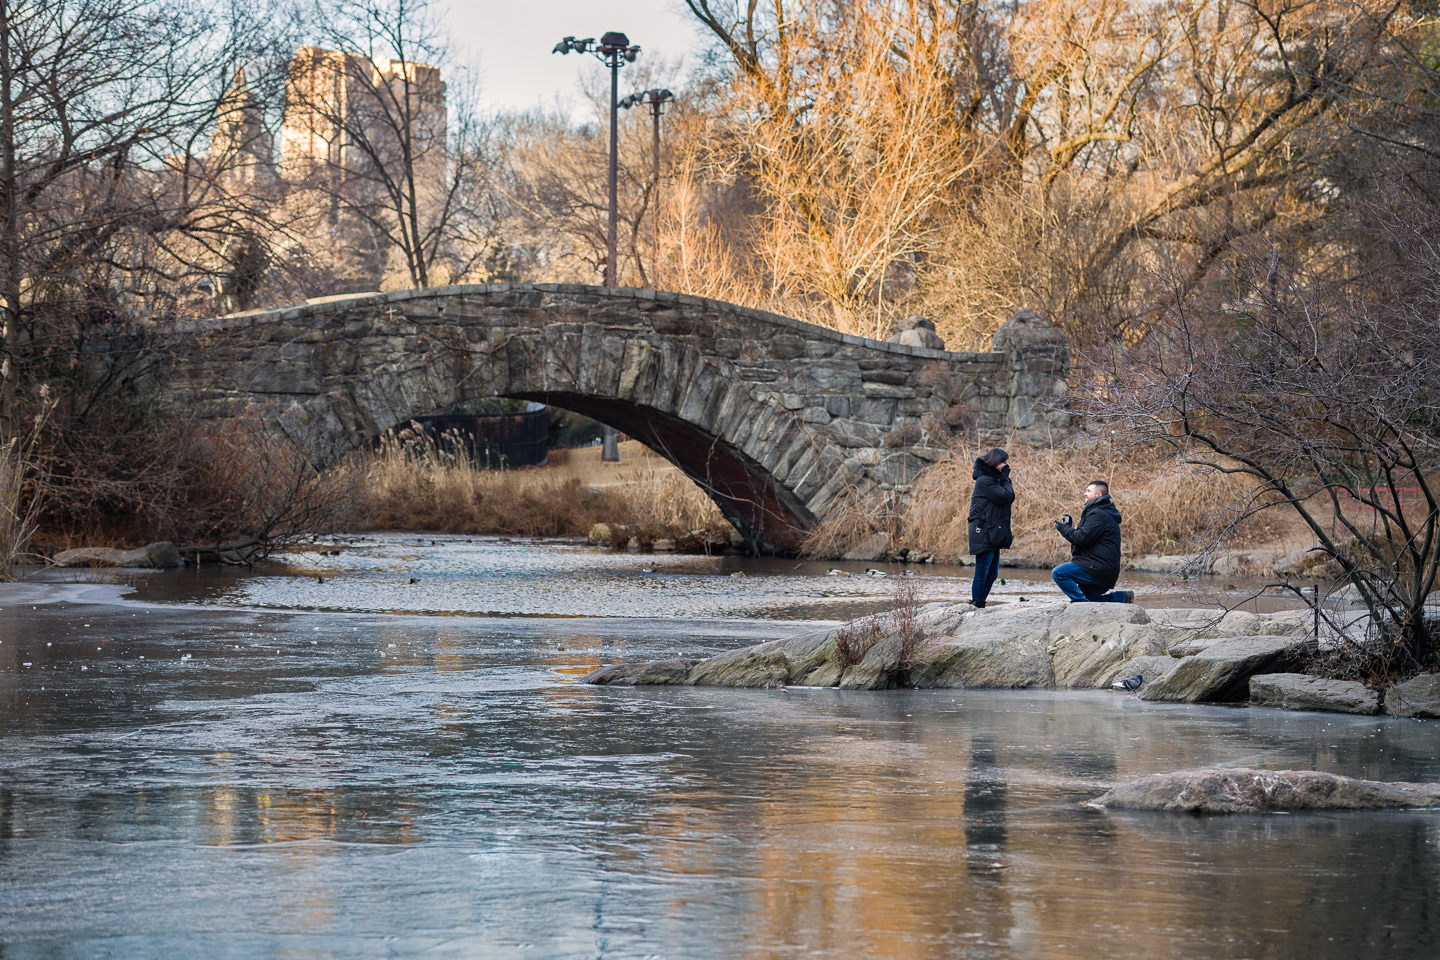 central park proposal at gapstow bridge paparazzi proposals